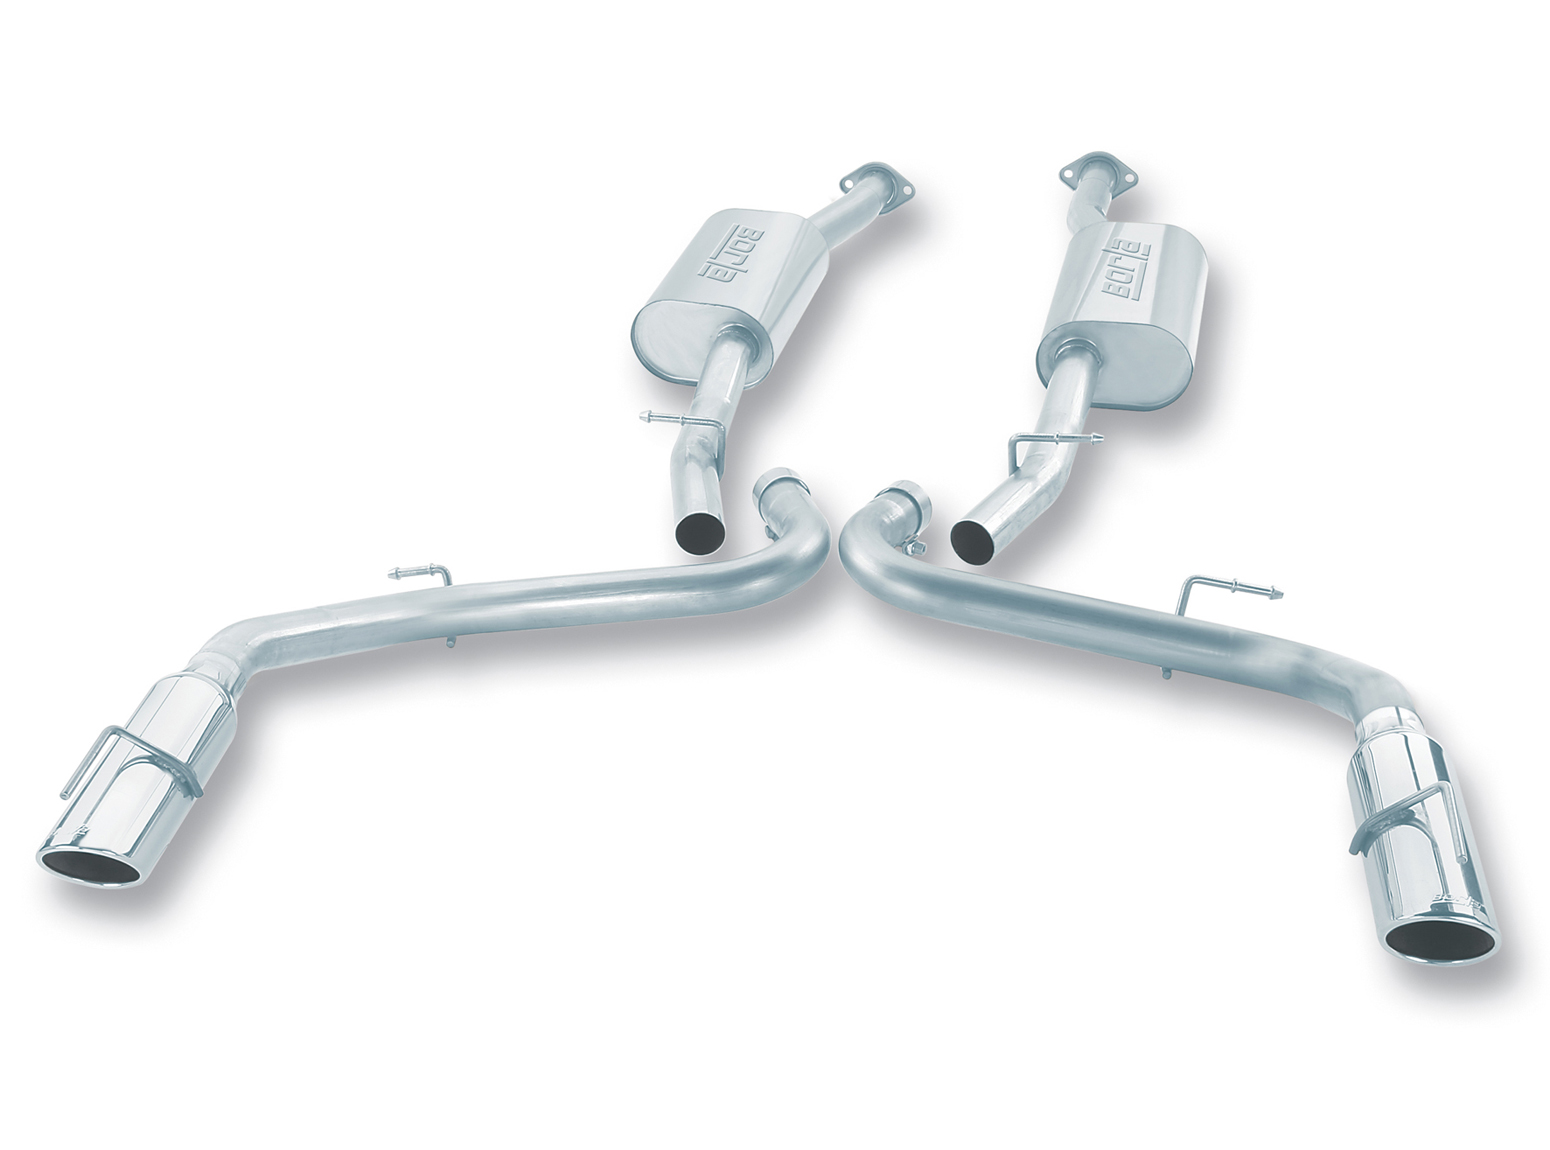 "Ford Mustang Cobra 1999-2004 Borla 2.5"" Cat-Back Exhaust System ""touring"" - Single Round Rolled Angle-Cut  Long X Single Round Rolled Angle-Cut Intercooled"" Dia"